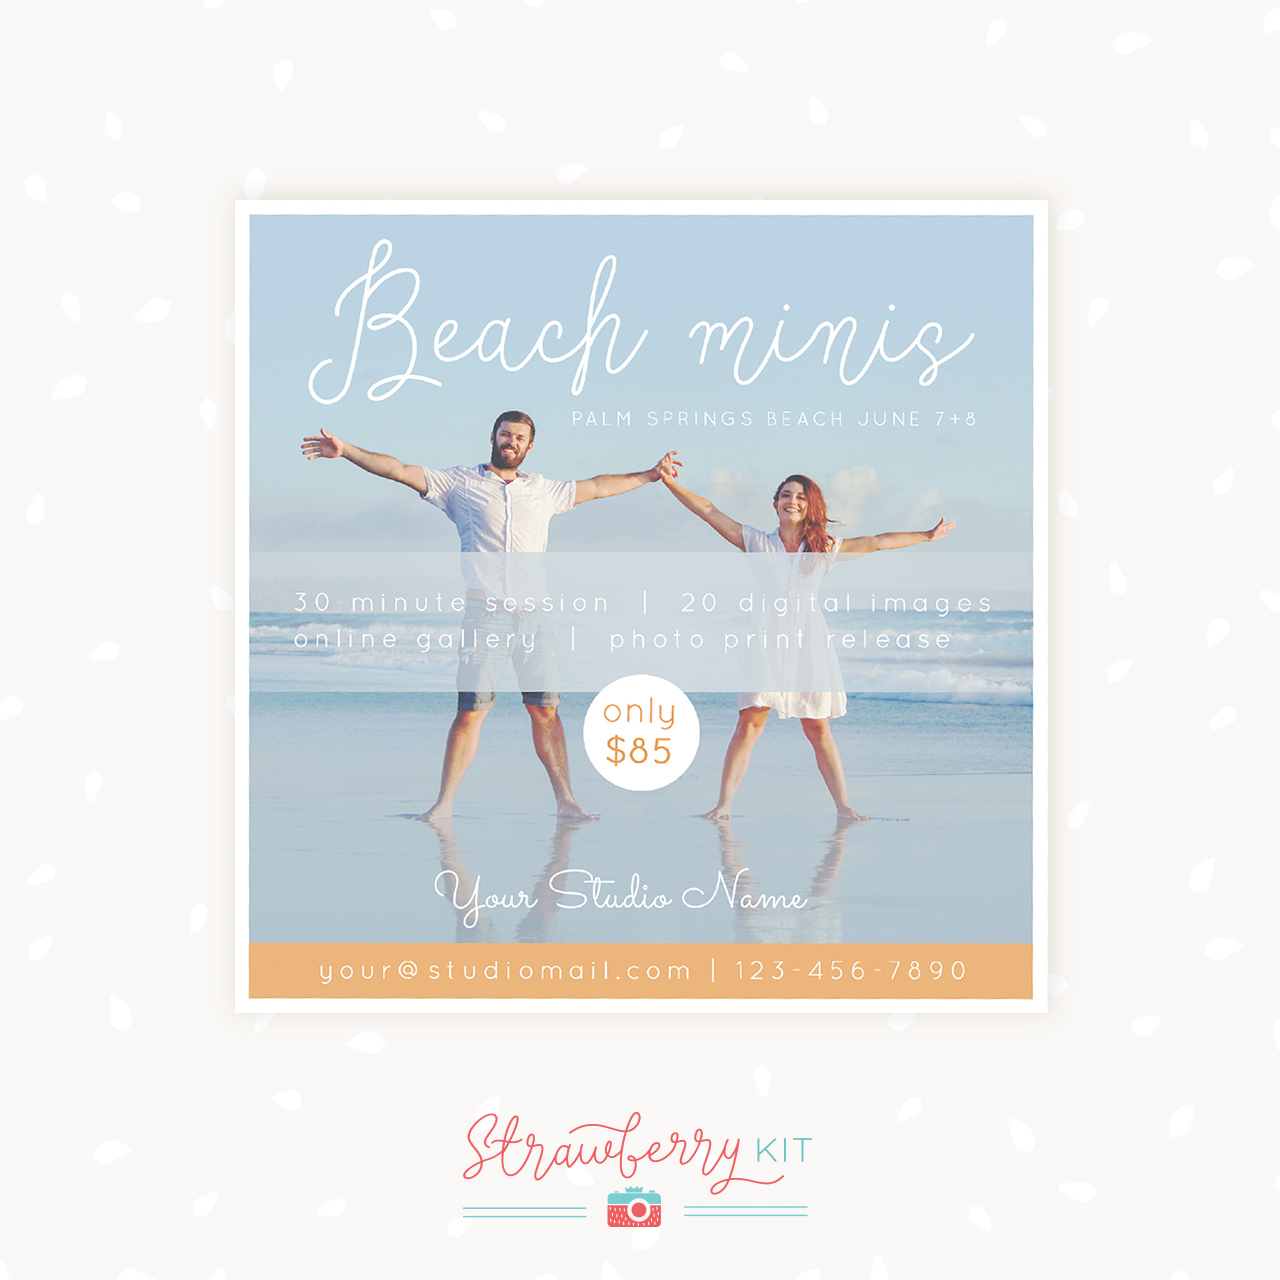 Beach mini sessions template